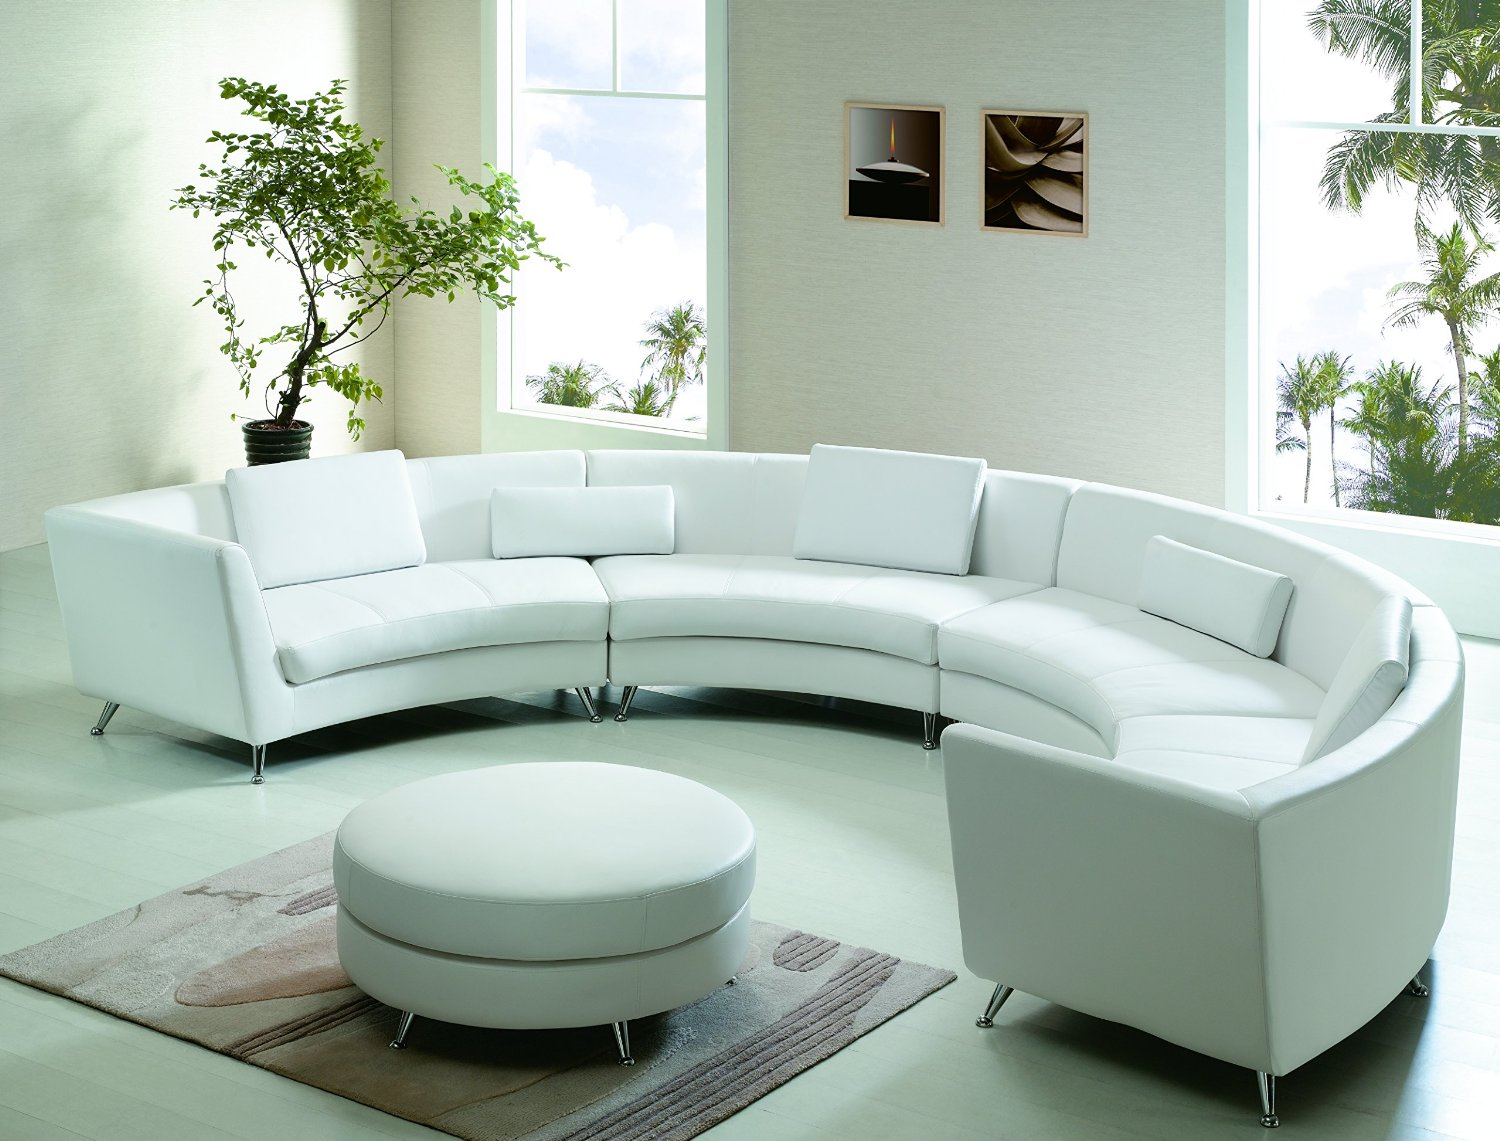 Get quotations · modern line furniture 8004w g7 contemporary leather curved open chaise sectional sofa with ottoman